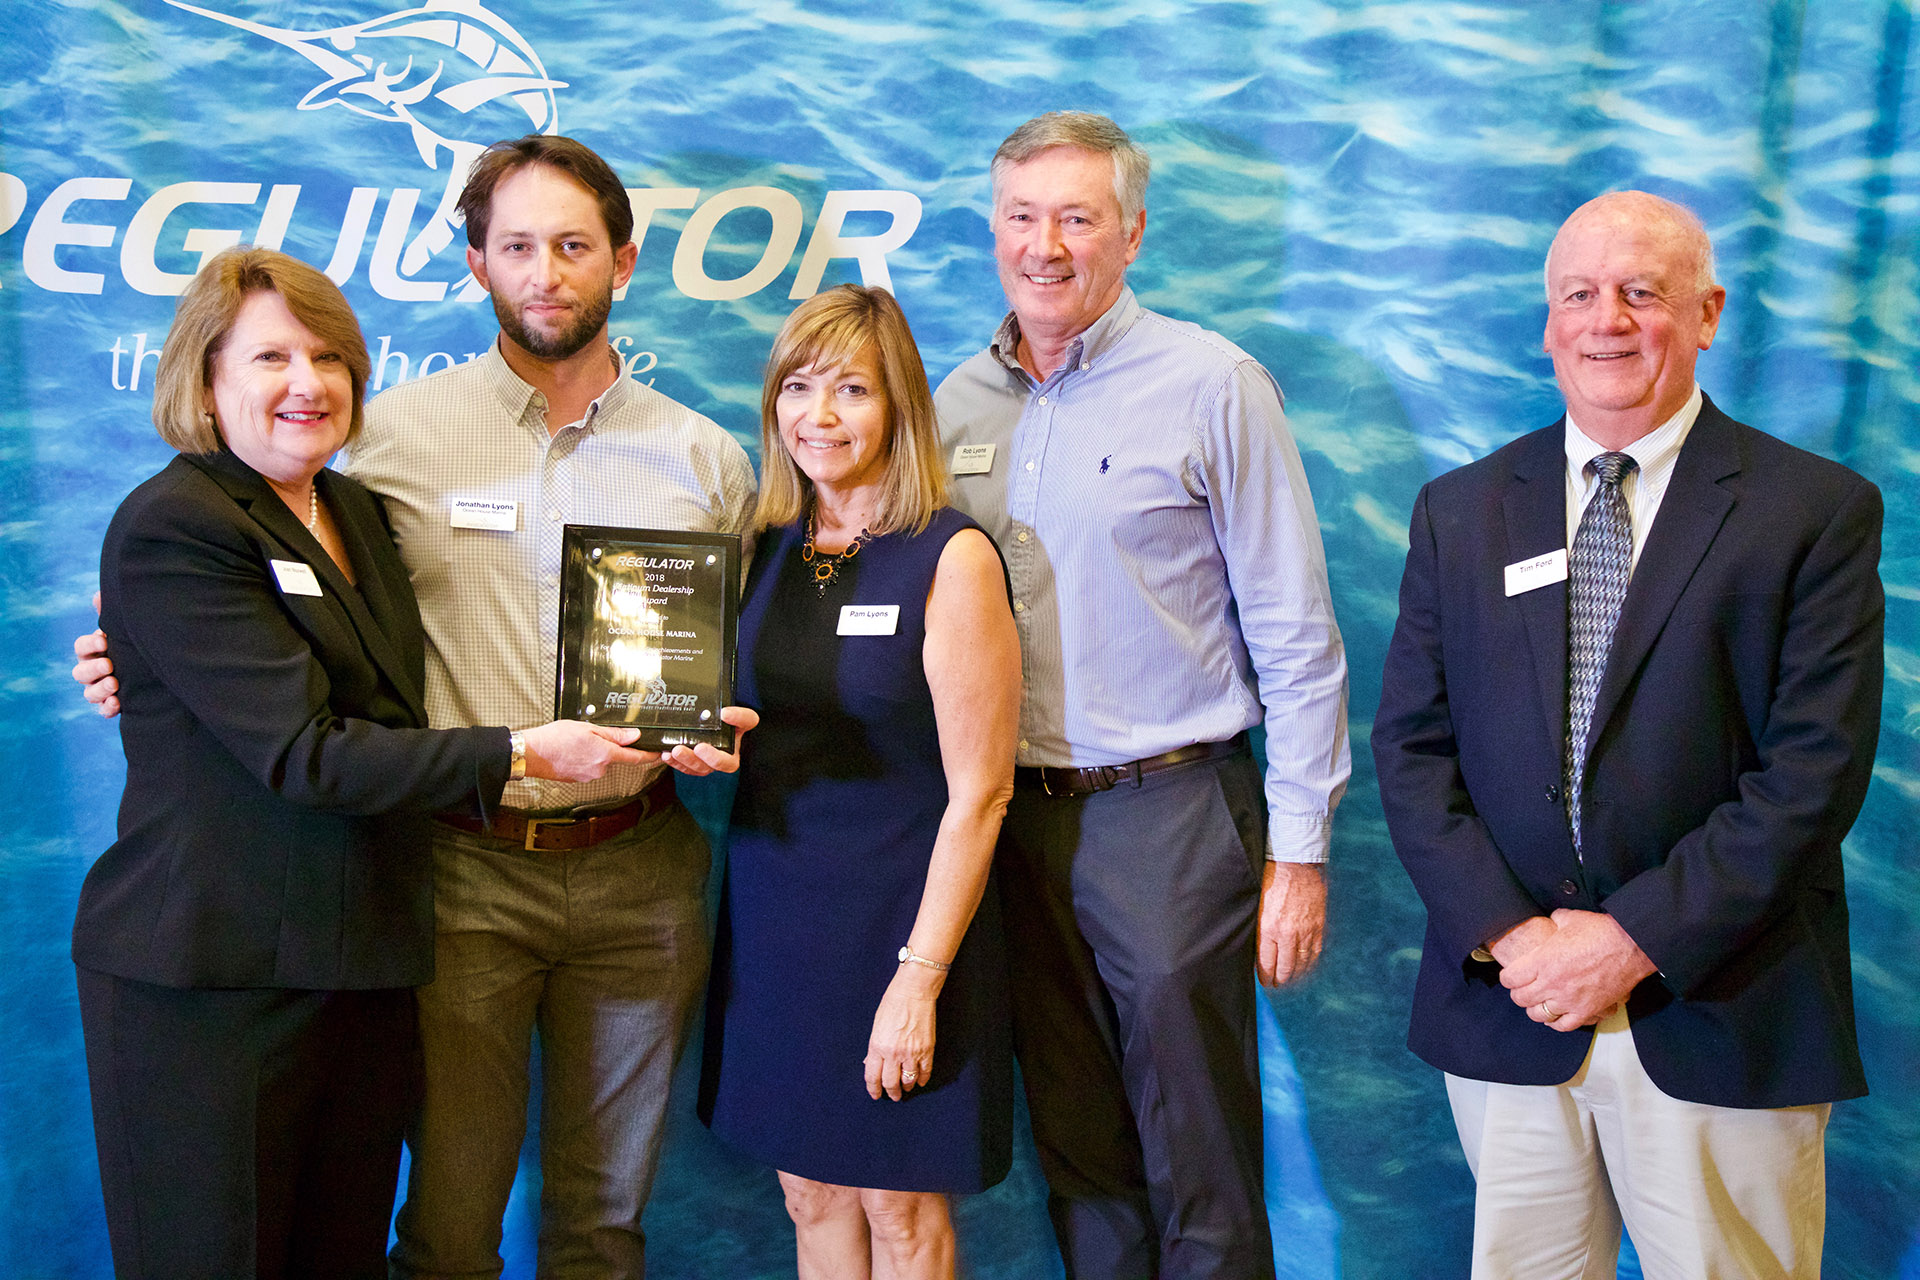 We were awarded as Platinum Regulator Dealer by Regulator Boats.